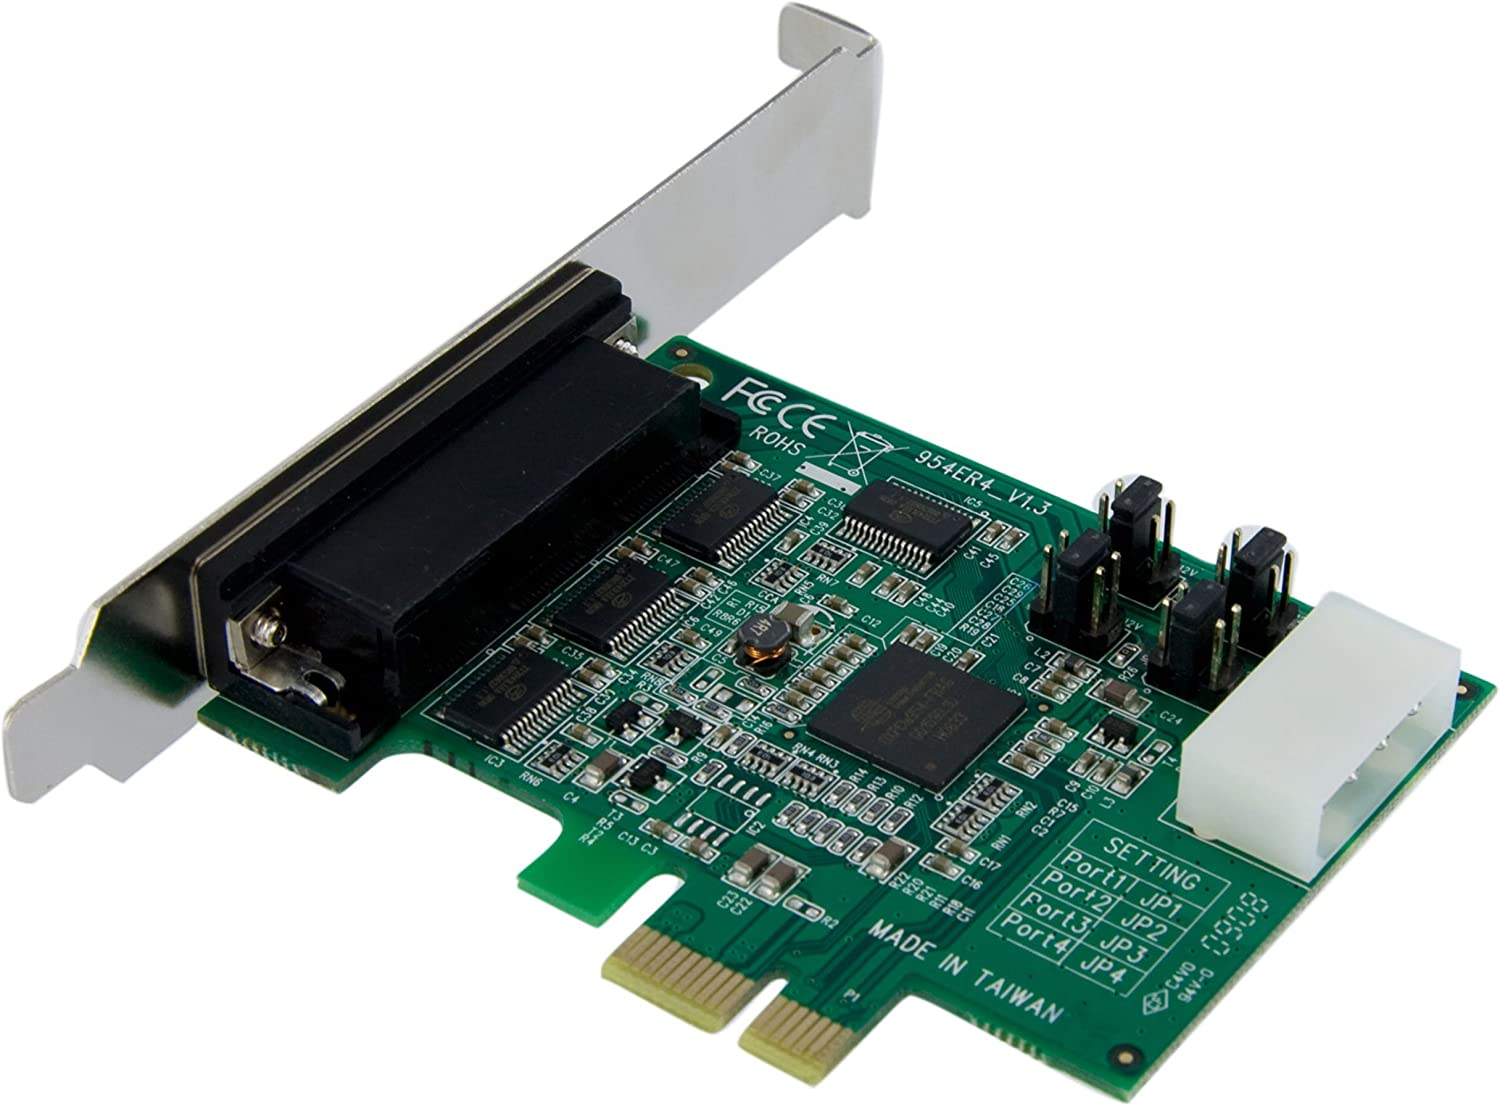 Amazon.com: StarTech. com Tarjeta Adaptadora PCI Express ...